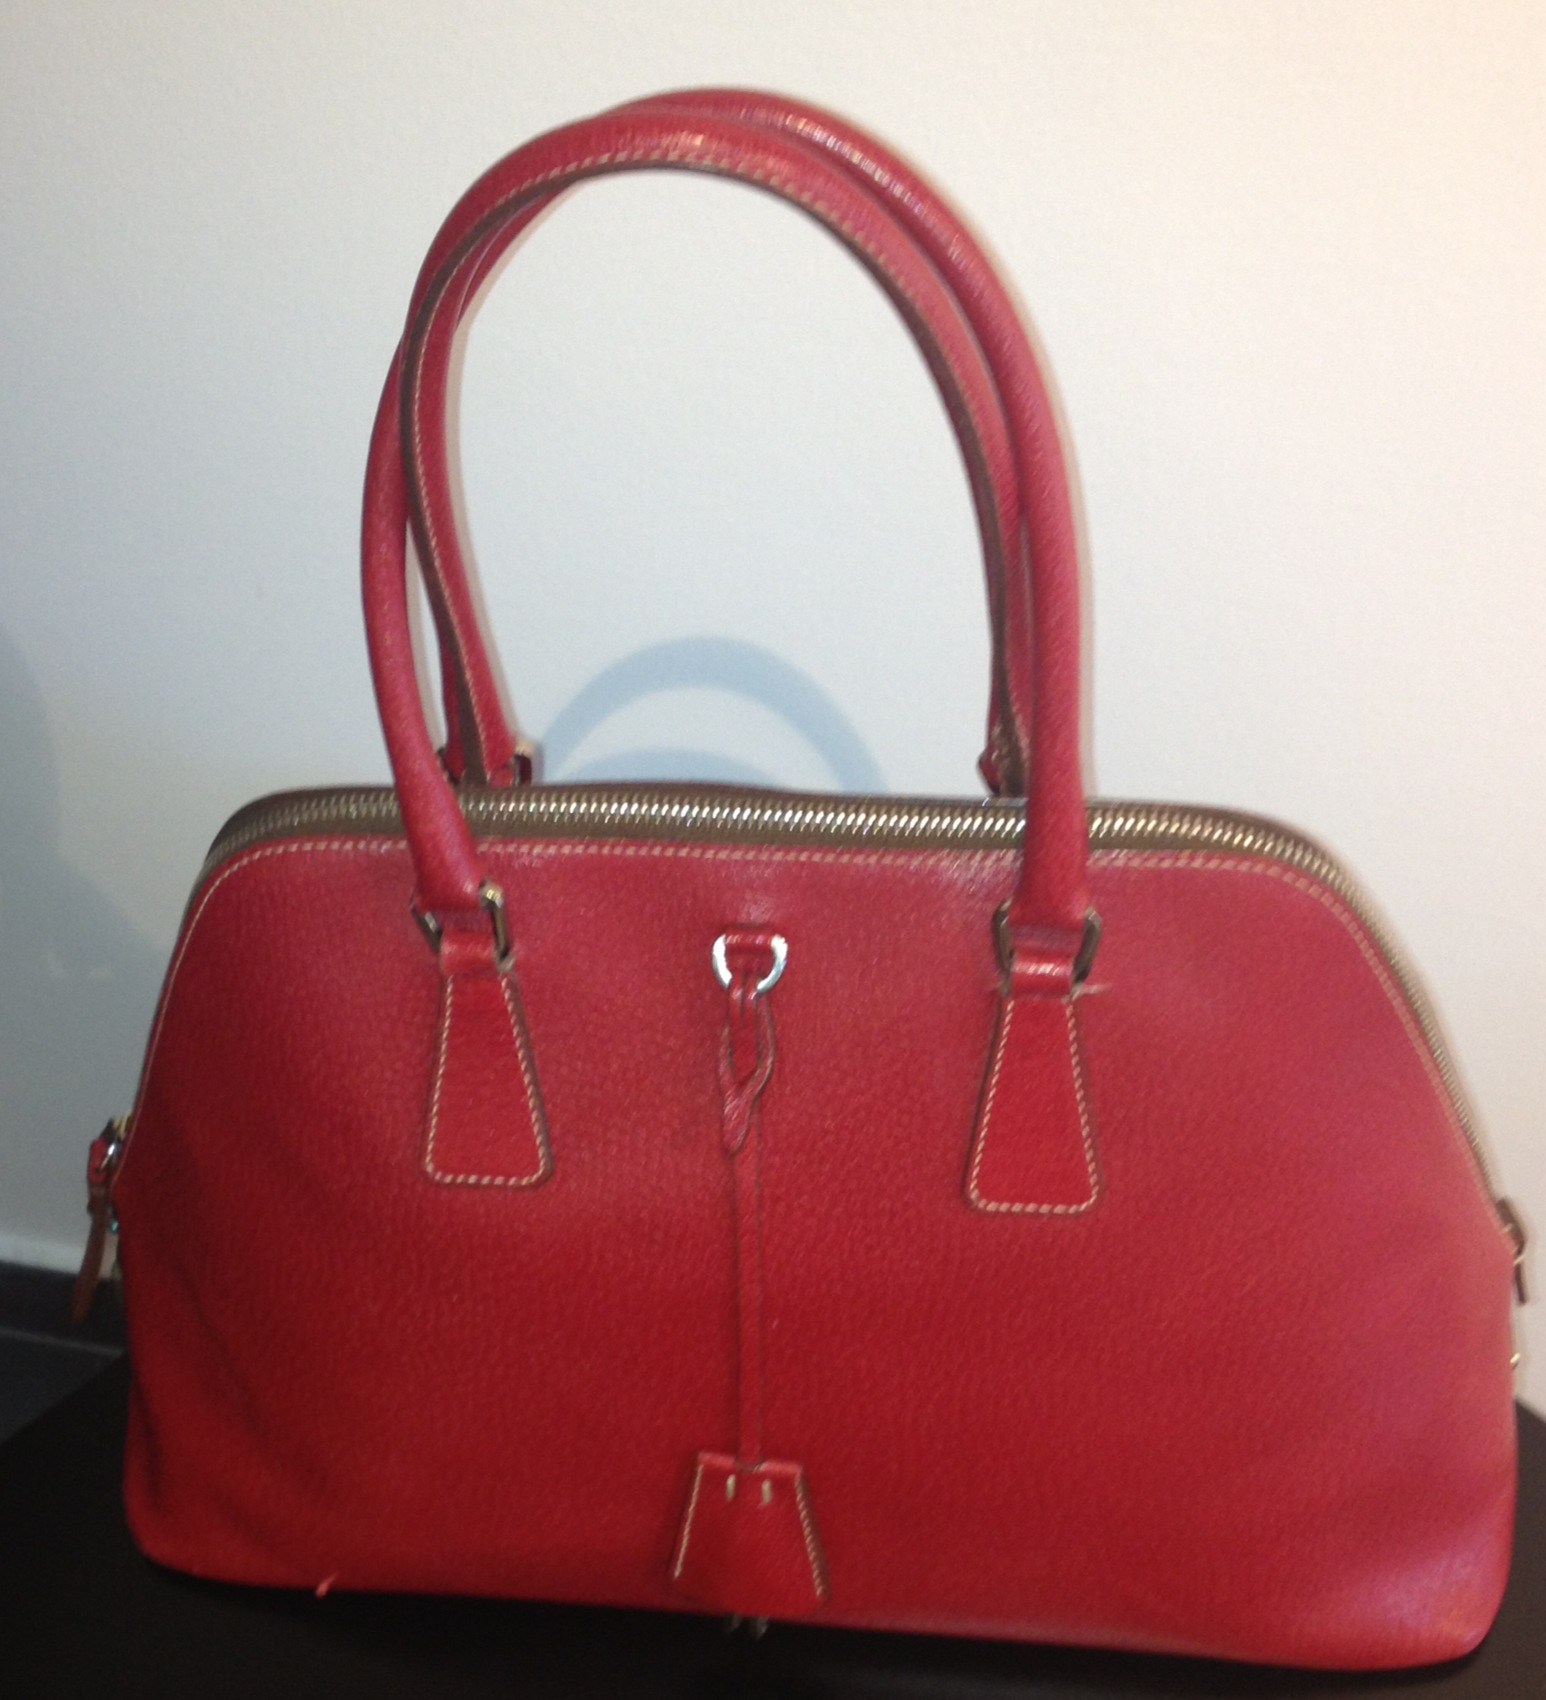 a943f393fcf045 Prada Classic Bag Red | Stanford Center for Opportunity Policy in ...